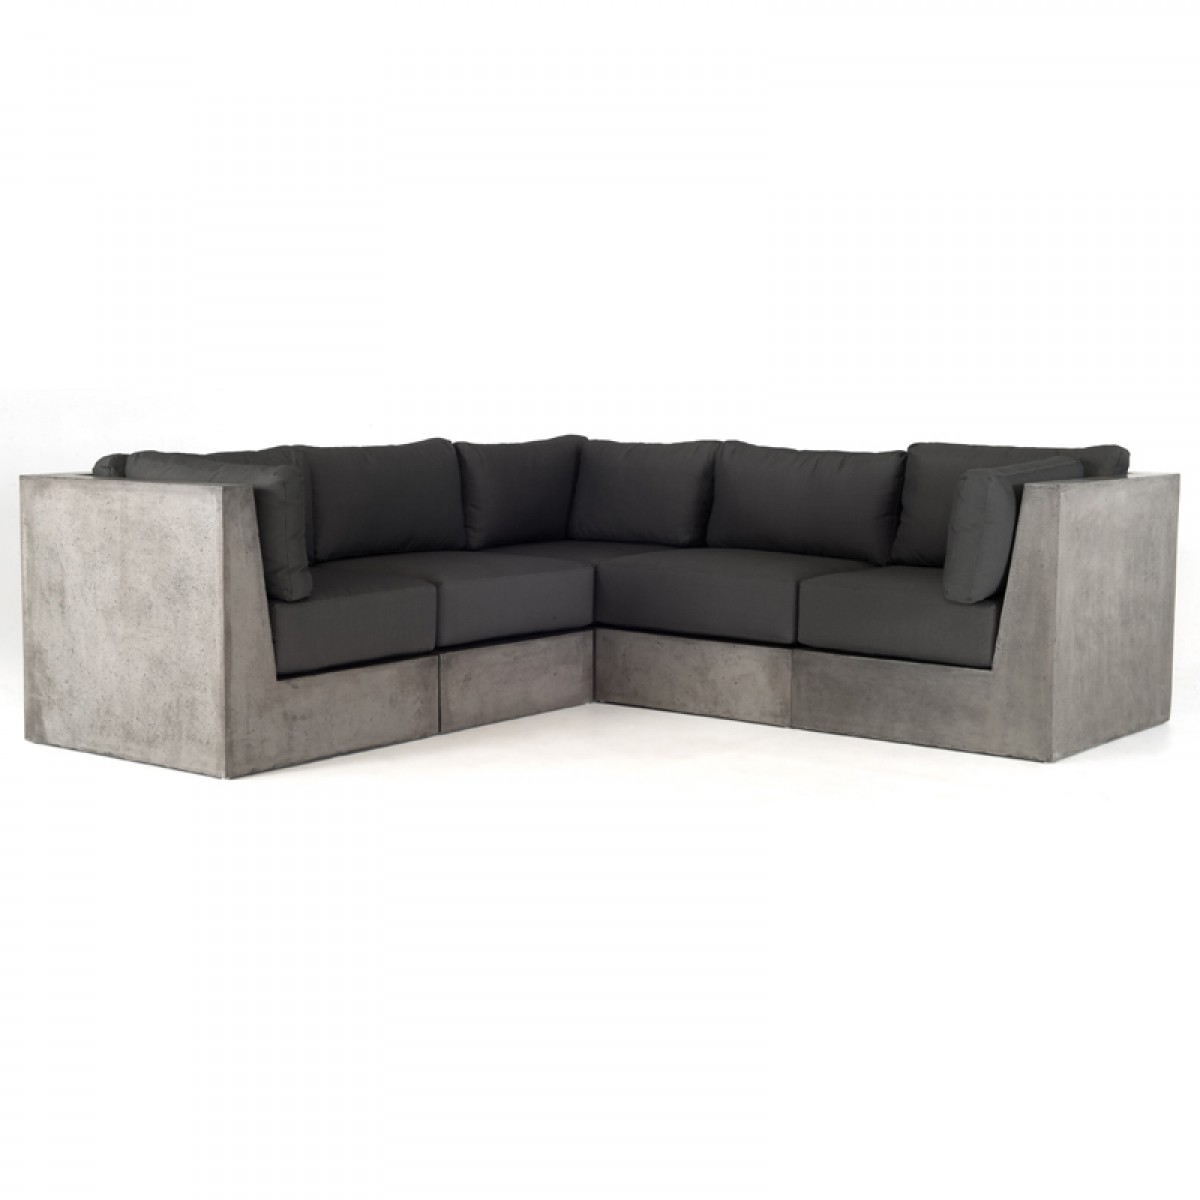 Modrest indigo contemporary grey concrete sectional sofa for Contemporary sectional sofas